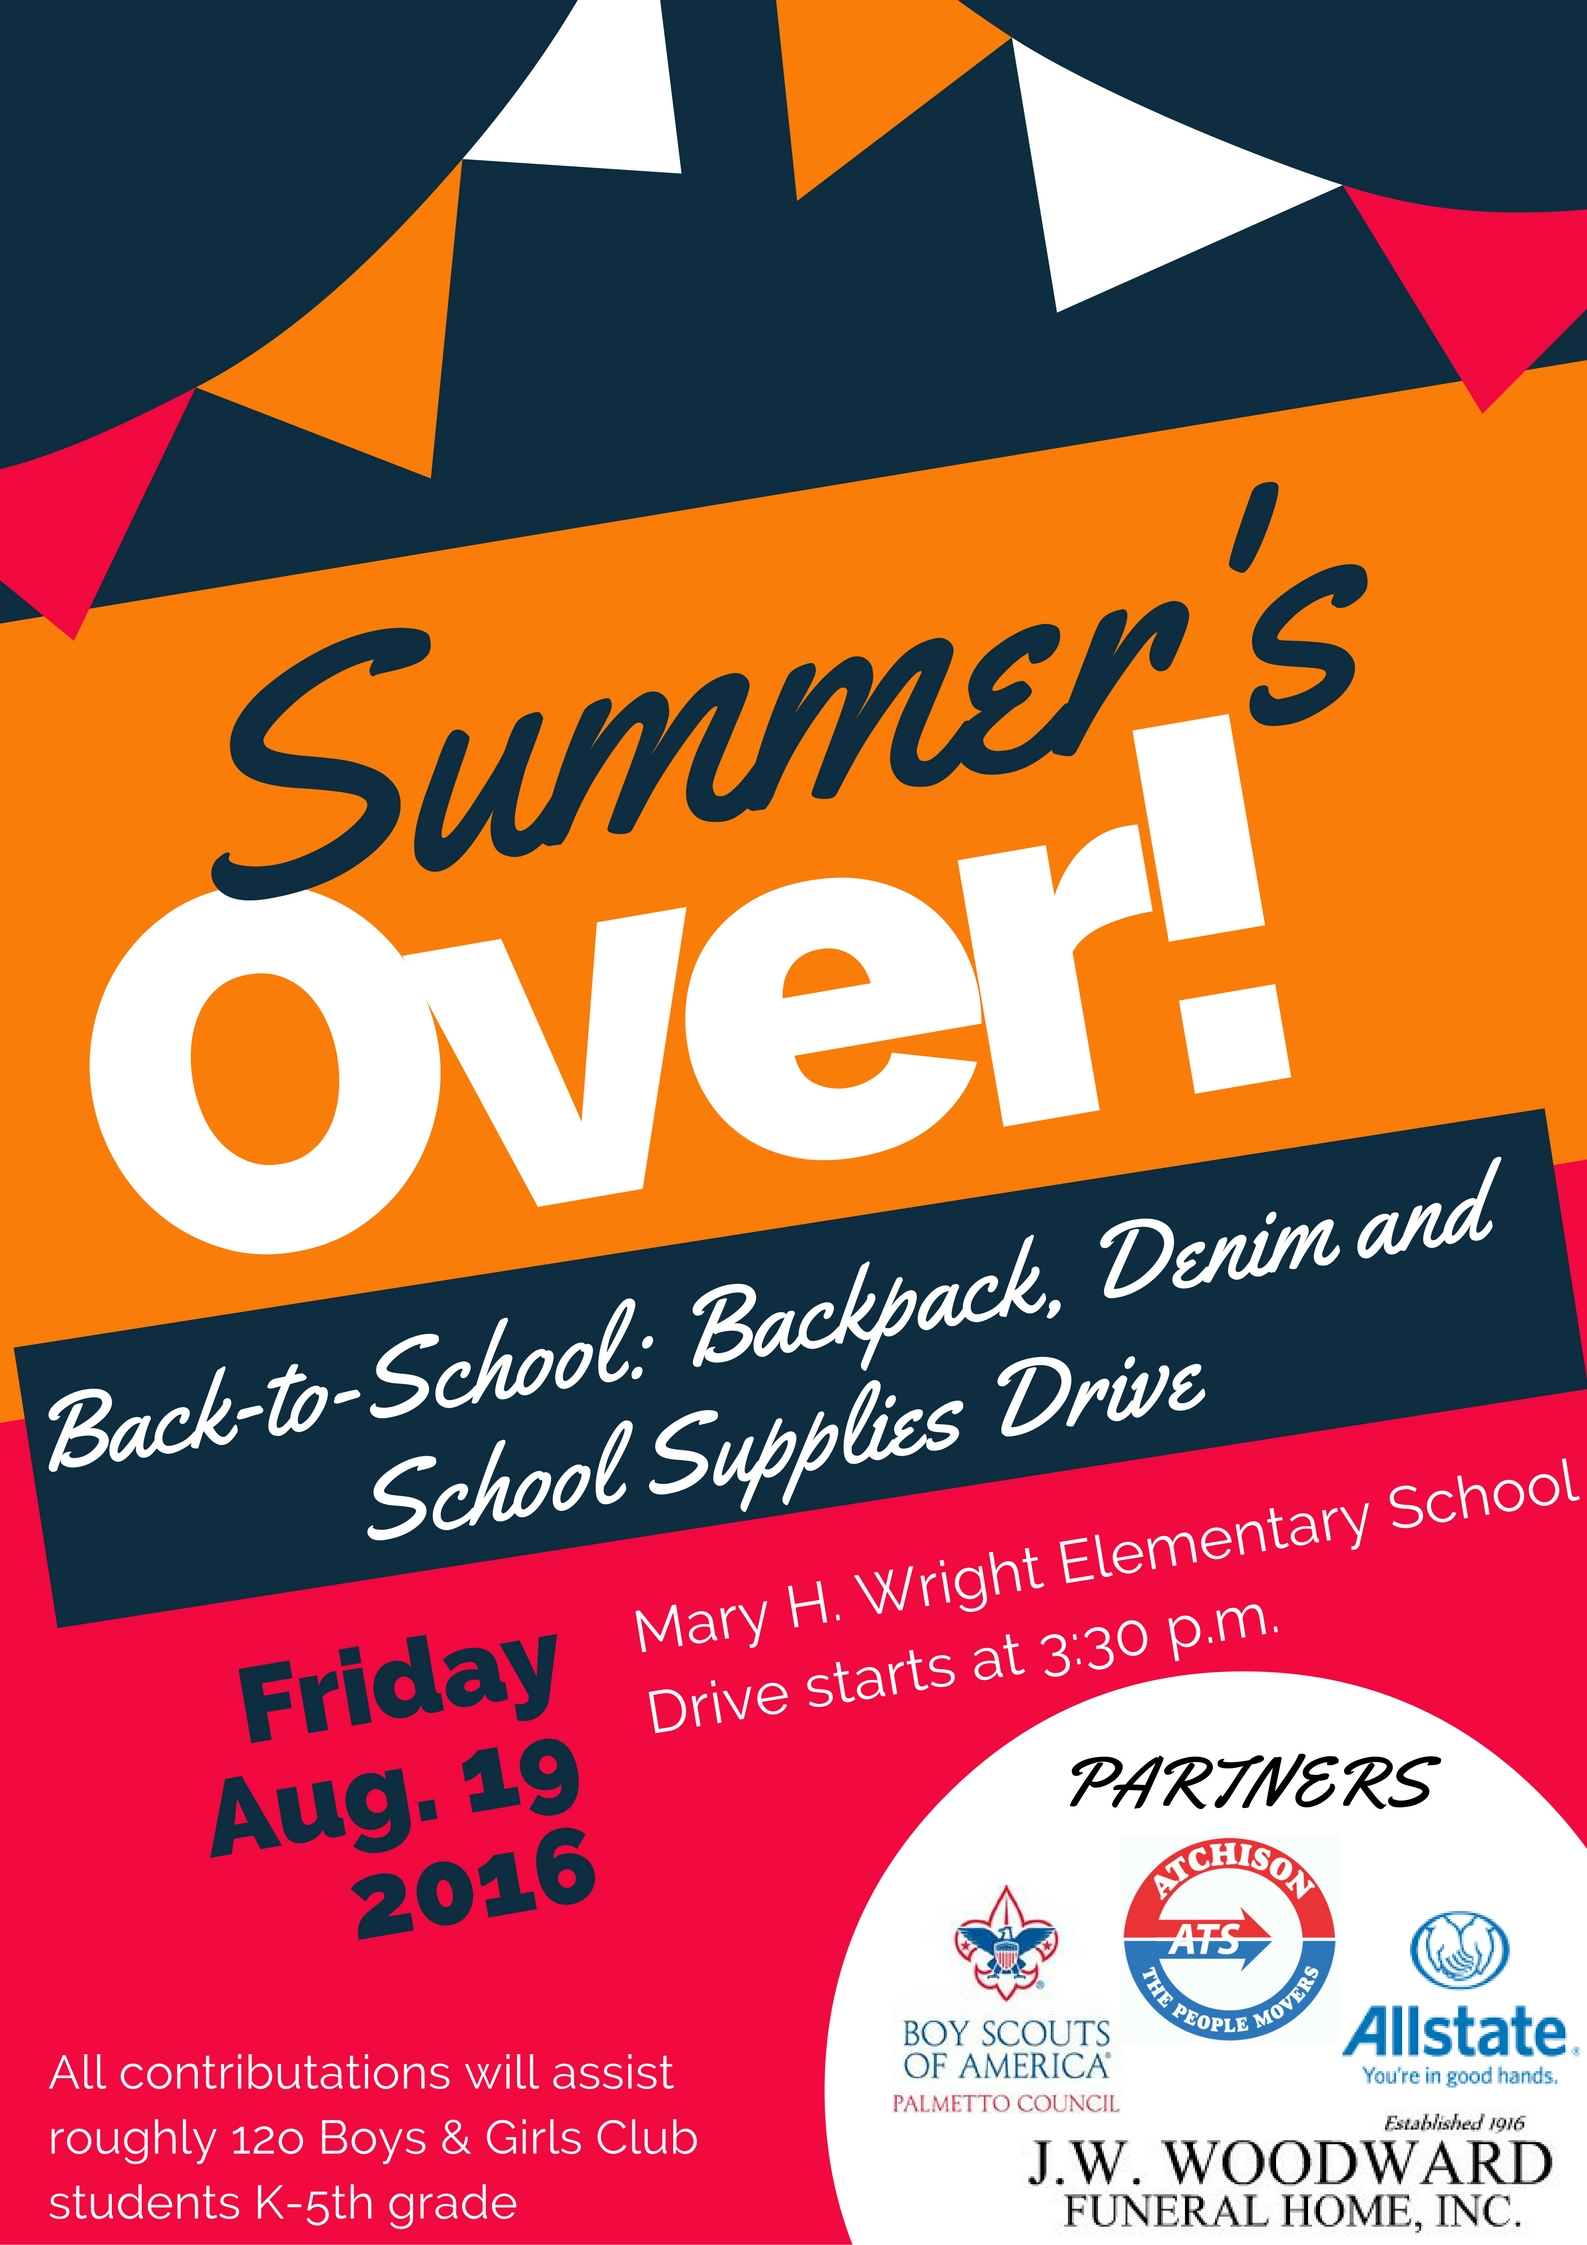 Back-to-School: Backpack, Denim and School Supplies Drive